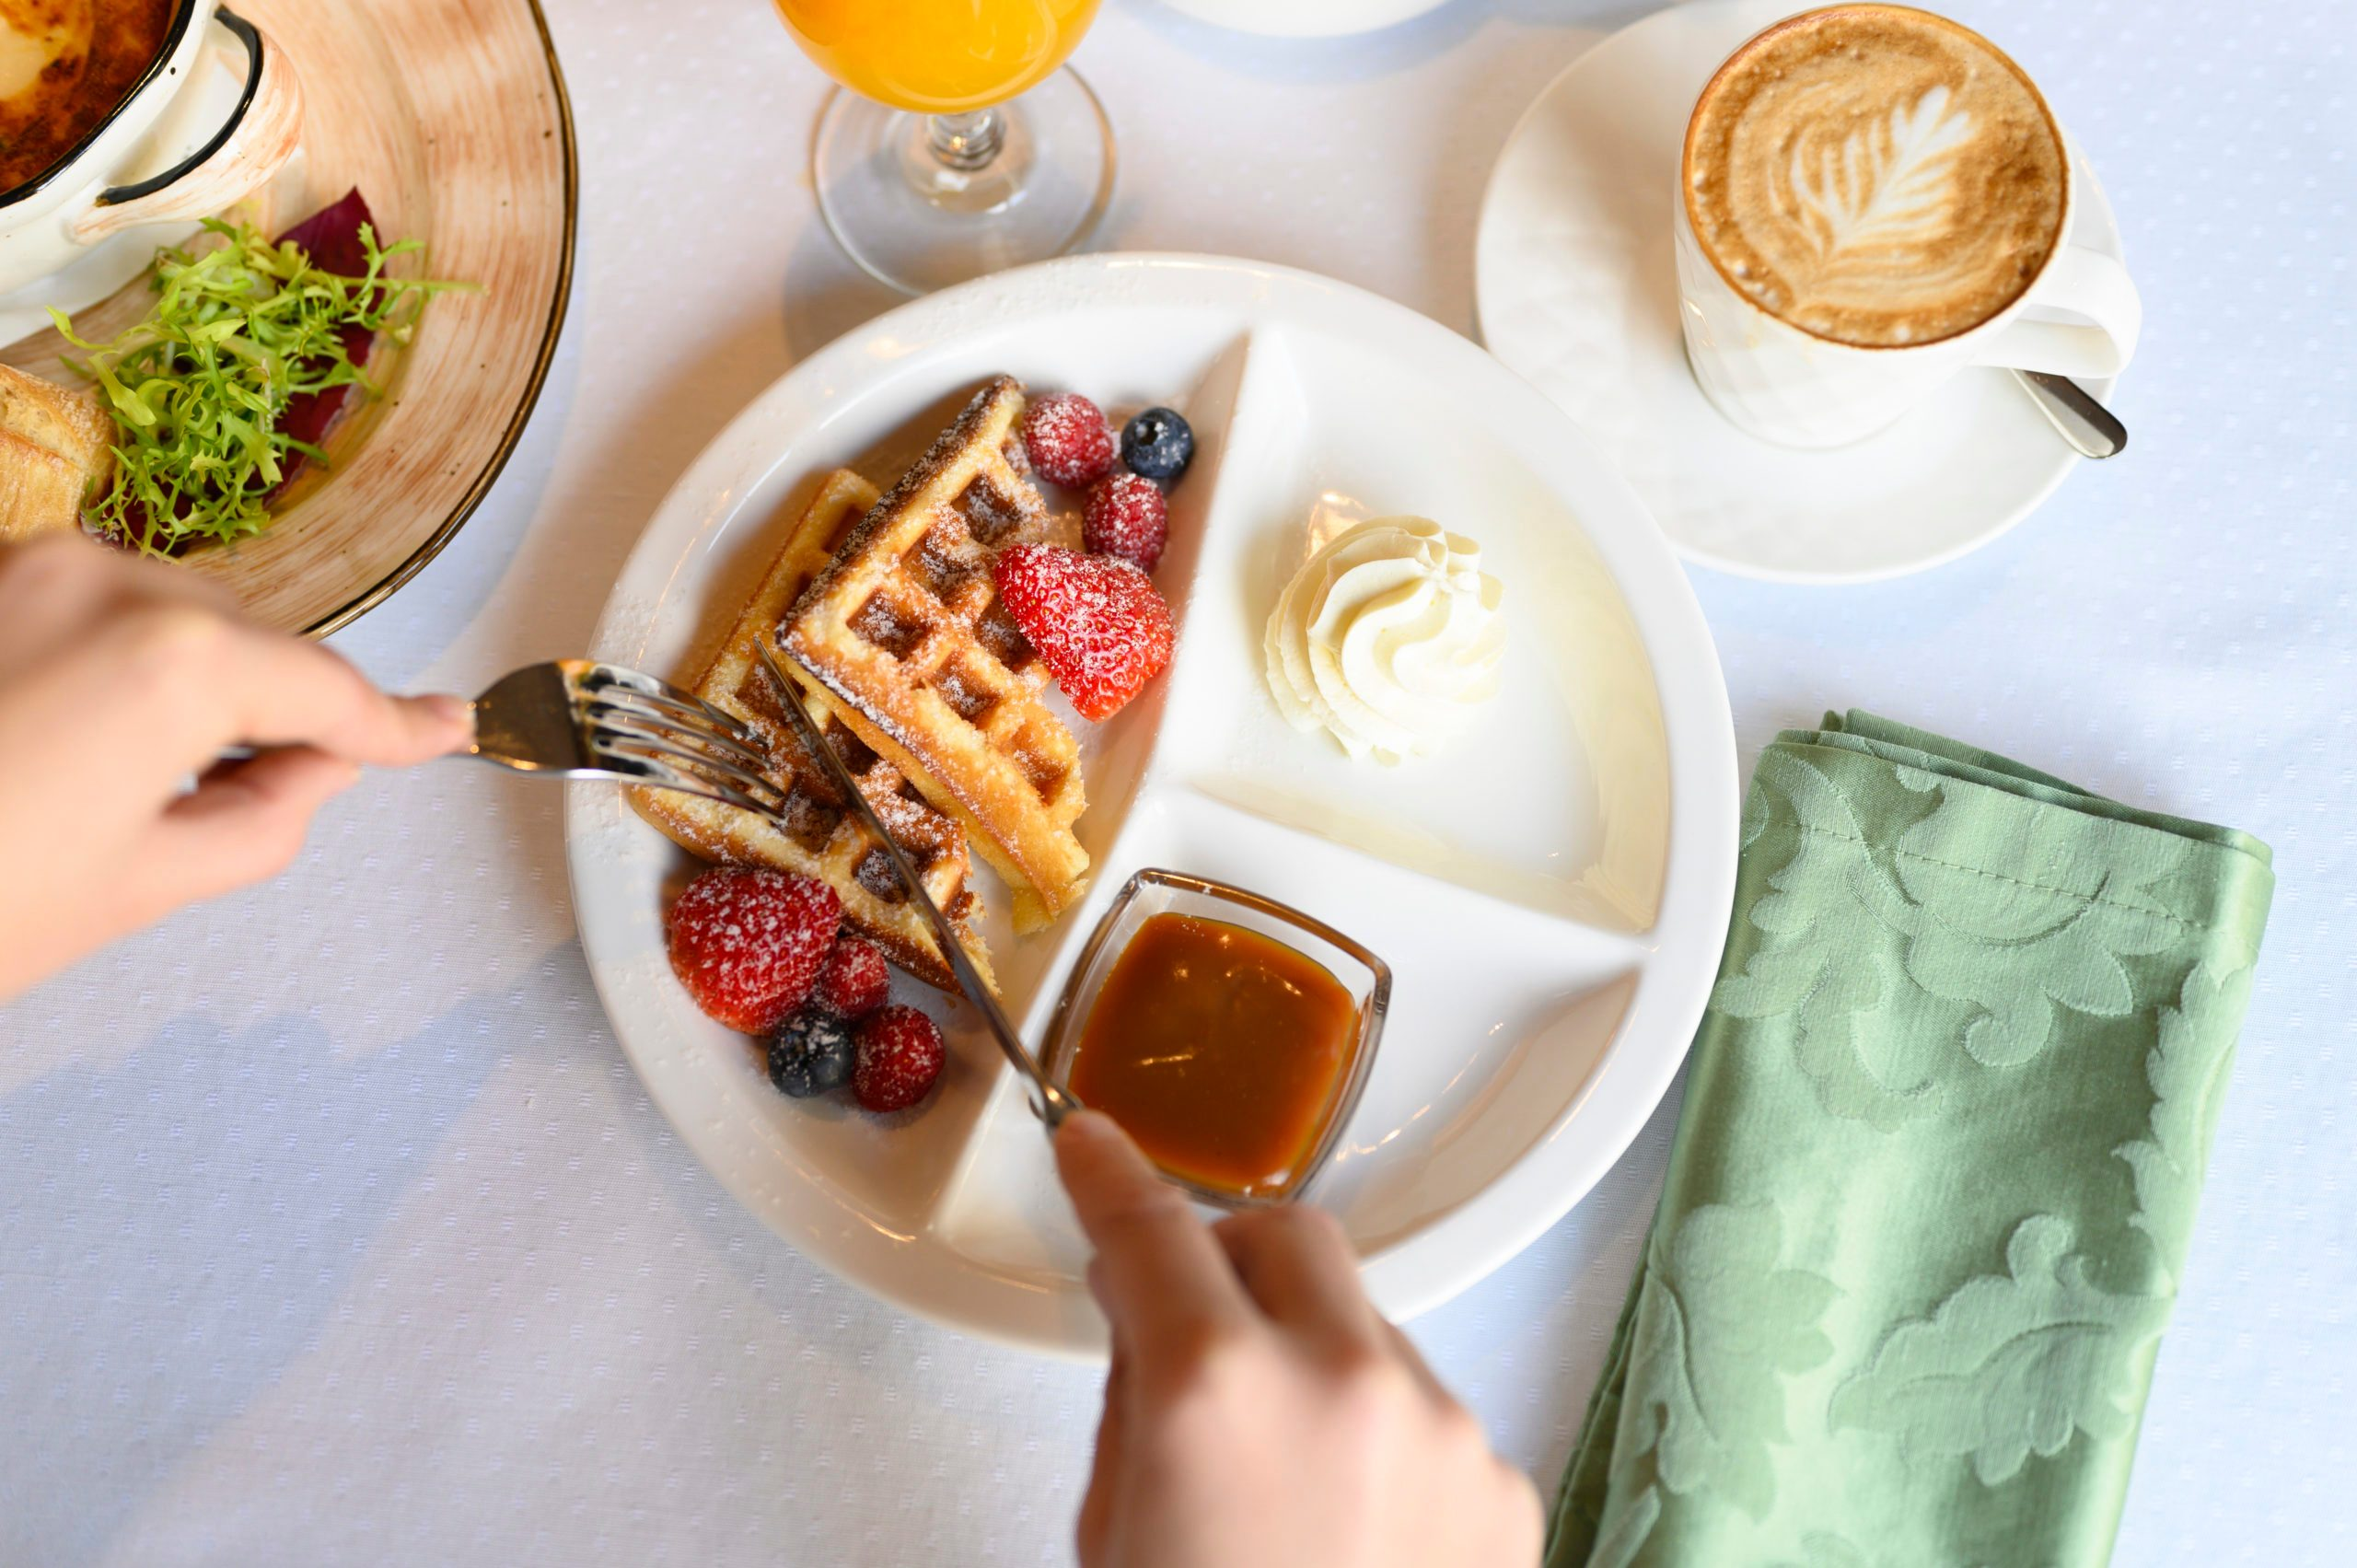 morning Breakfast or brunch in the restaurant. table with drinks and food. women's hands cut Viennese waffles with a knife and fork. selective focus